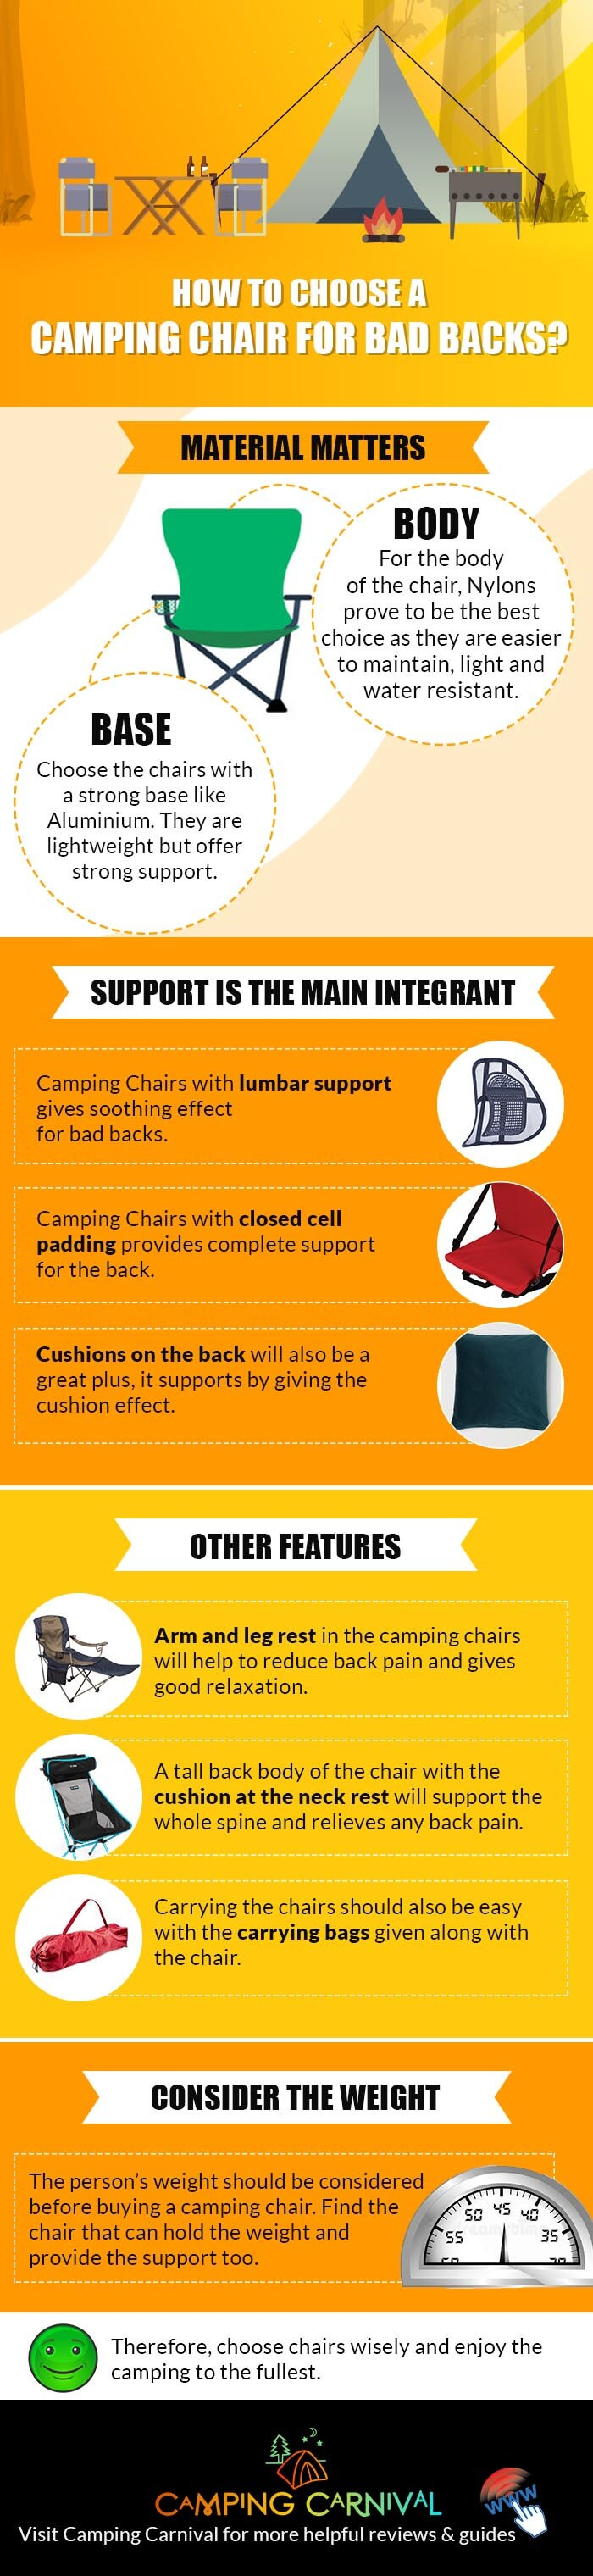 How to choose a camping chair for bad backs infographics